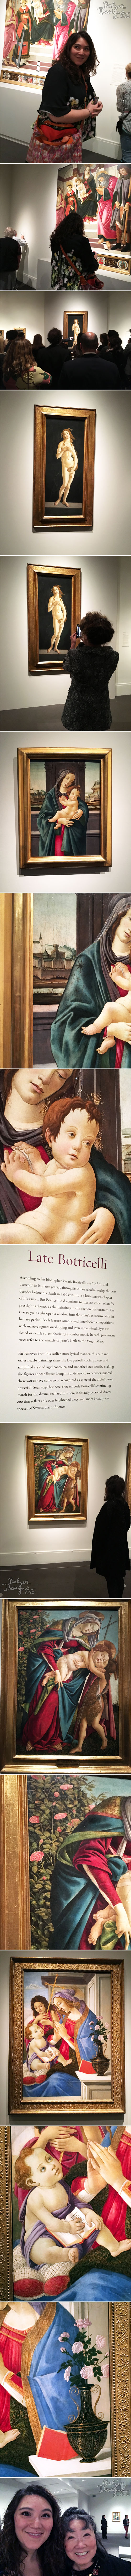 From the Balzer Designs Blog: Botticelli in Boston